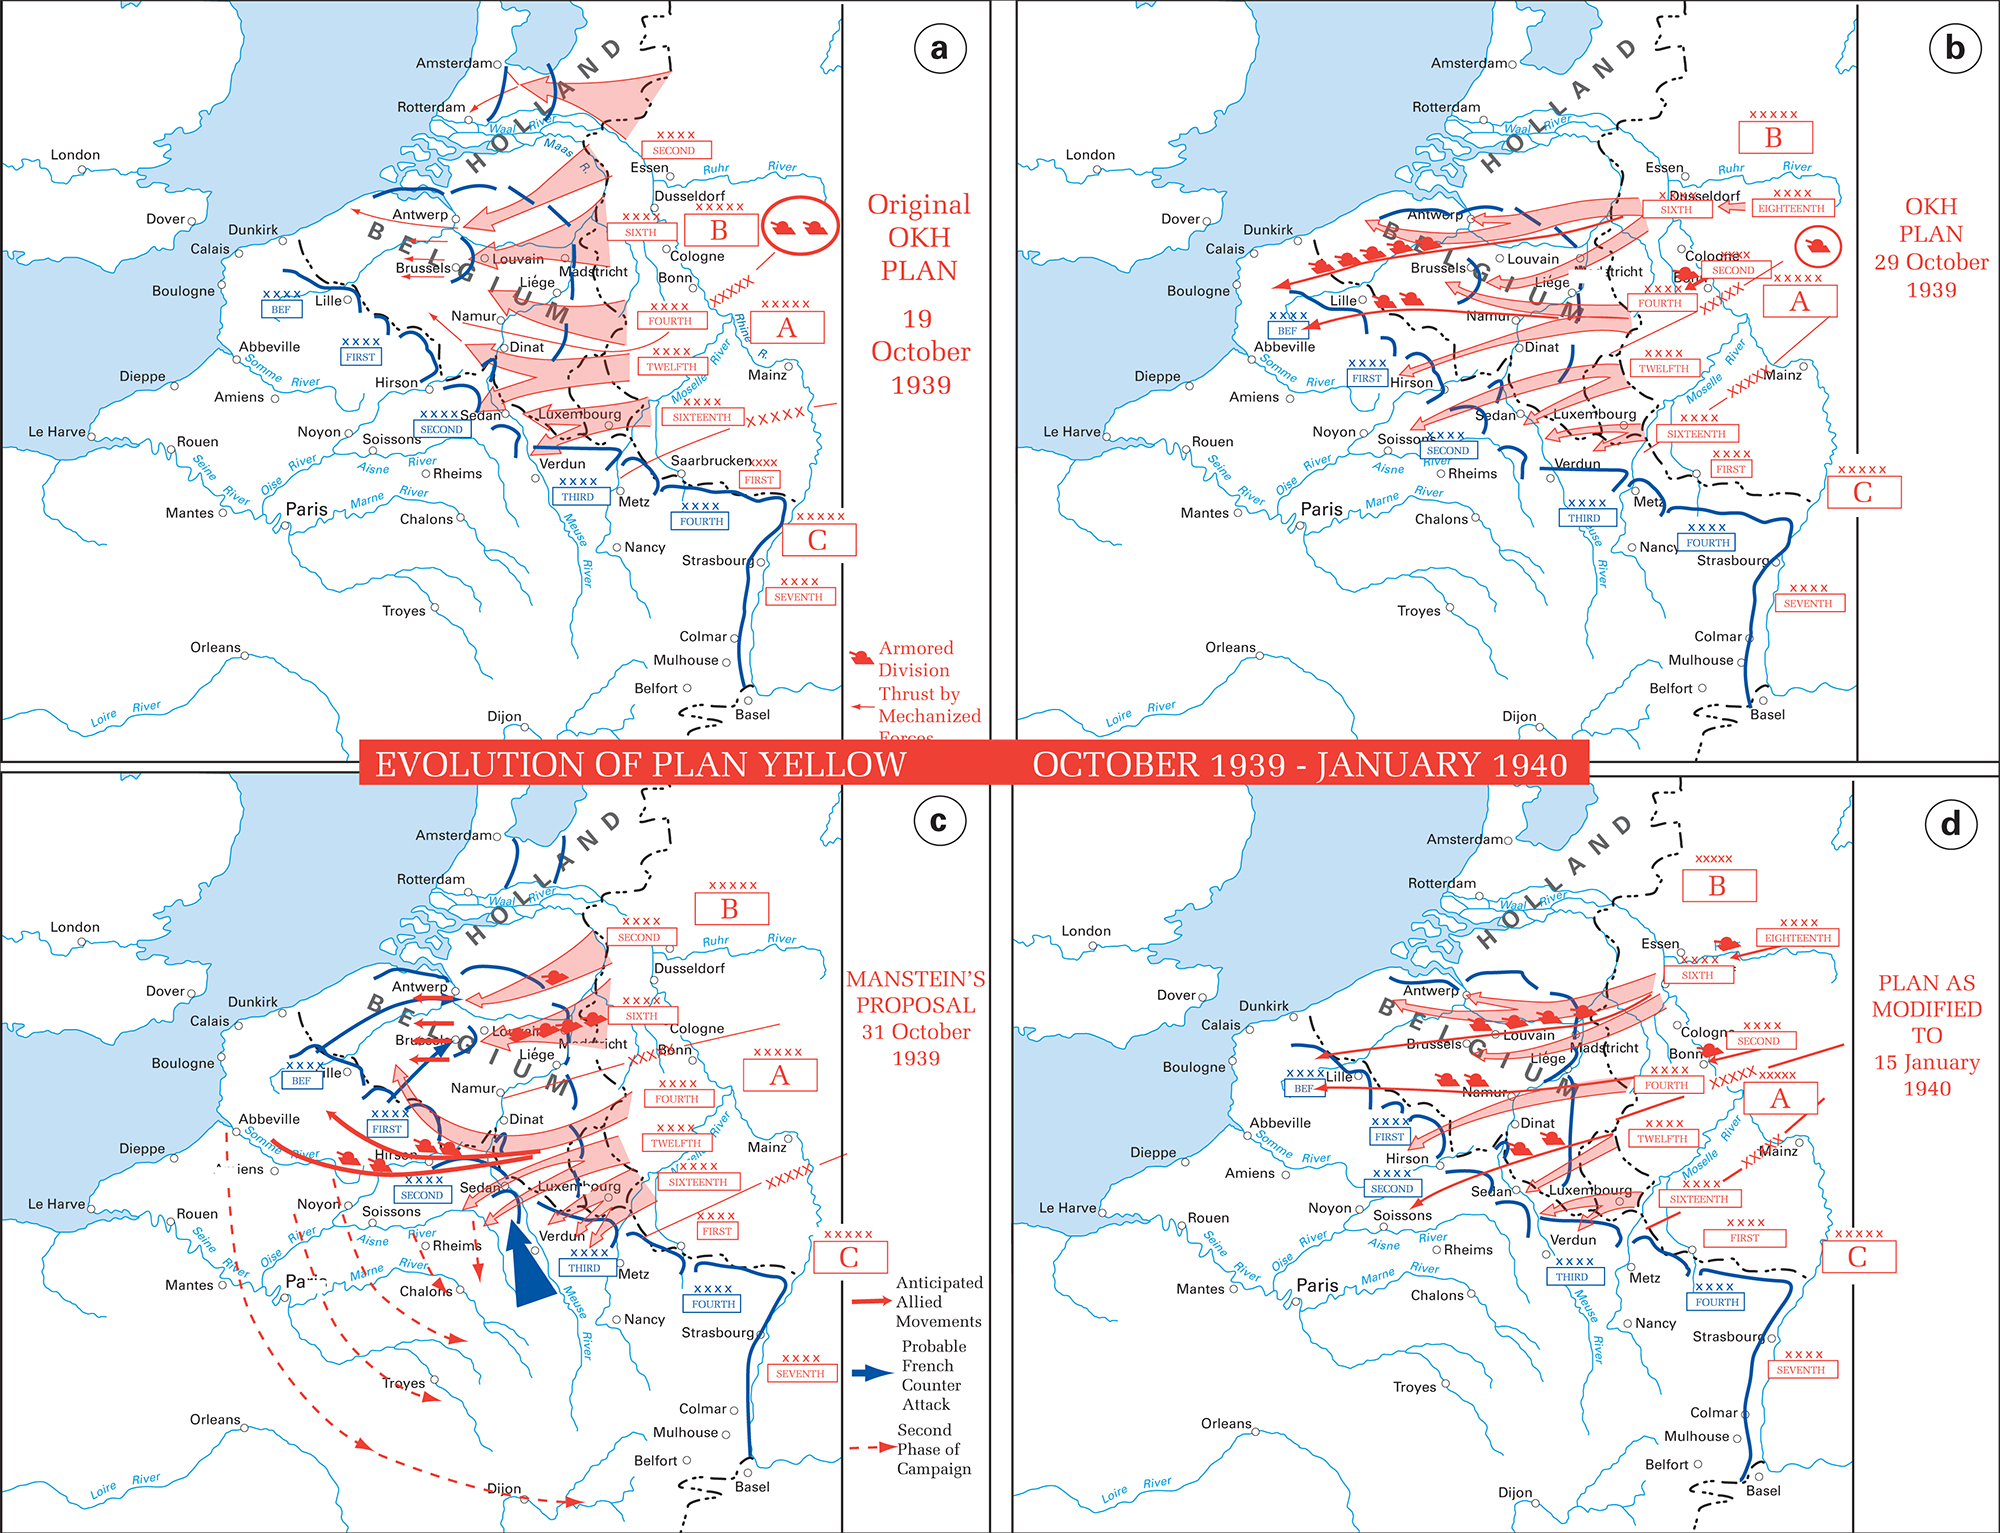 History Map of WWII: The War in the West - October 1939-January 1940